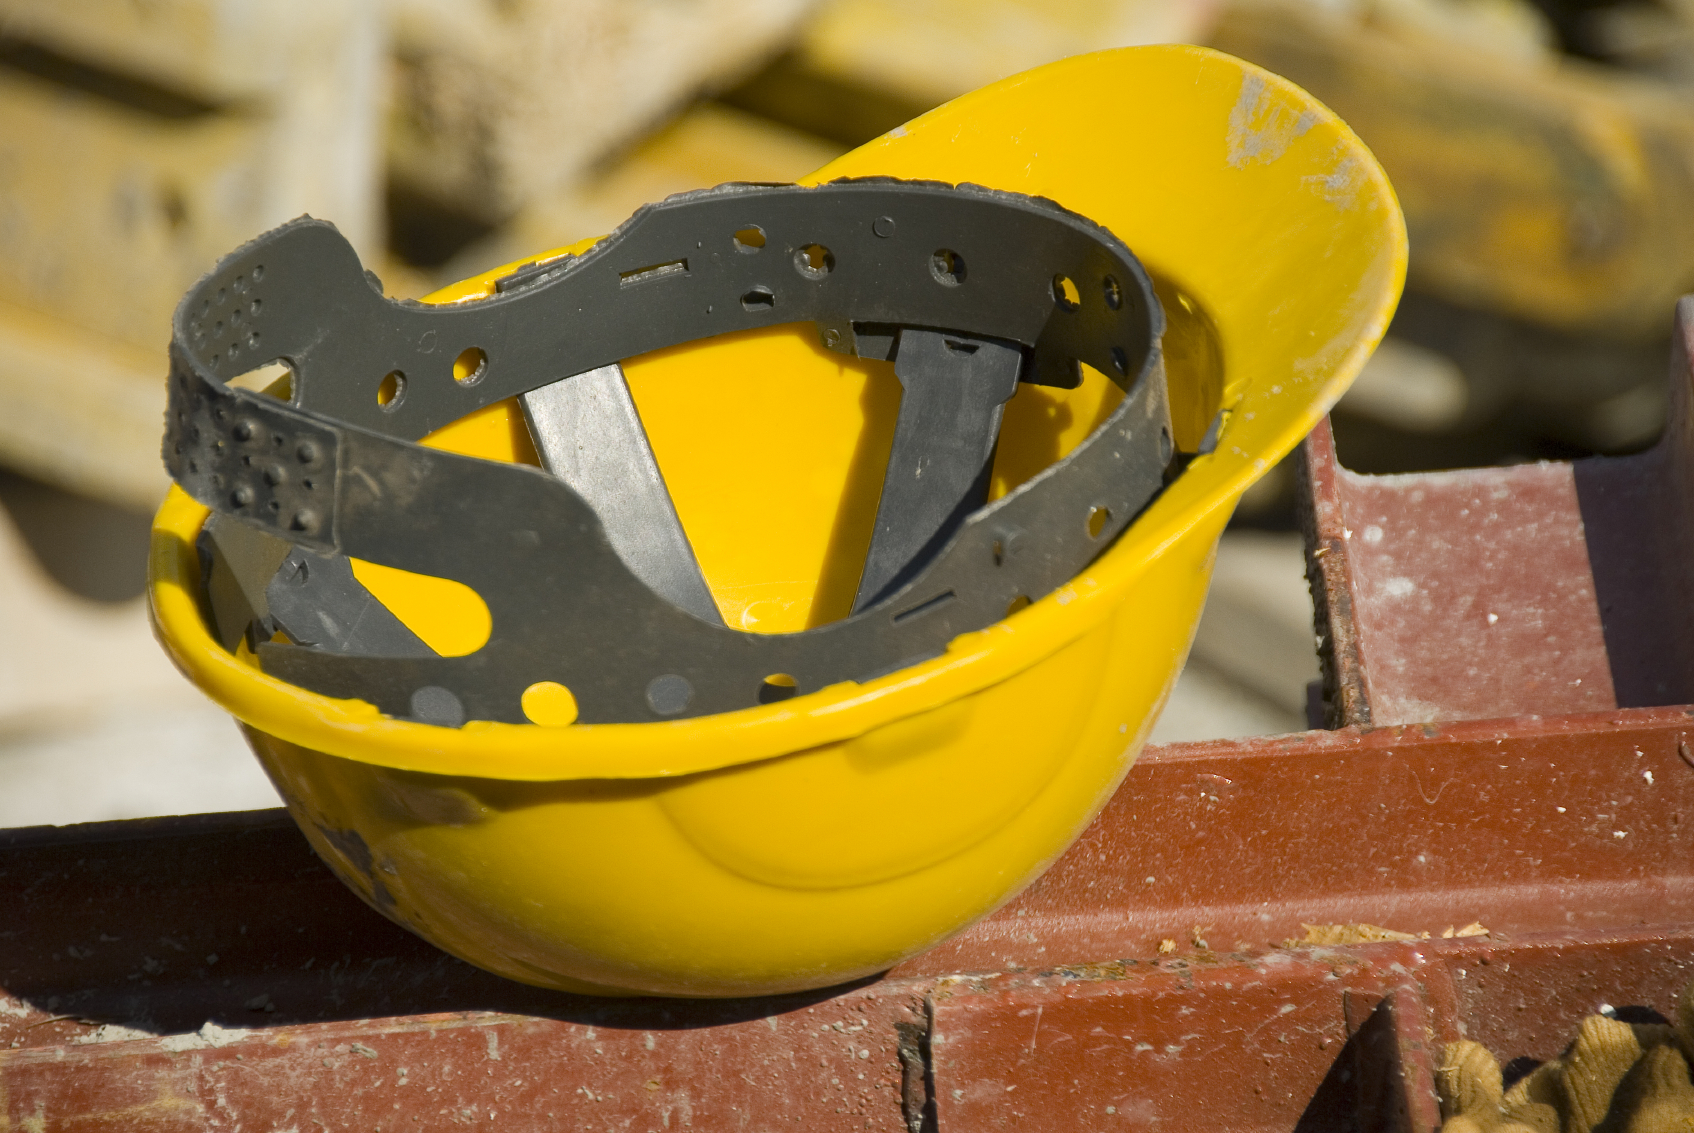 Yellow hard hat sitting on beam after industrial accident.